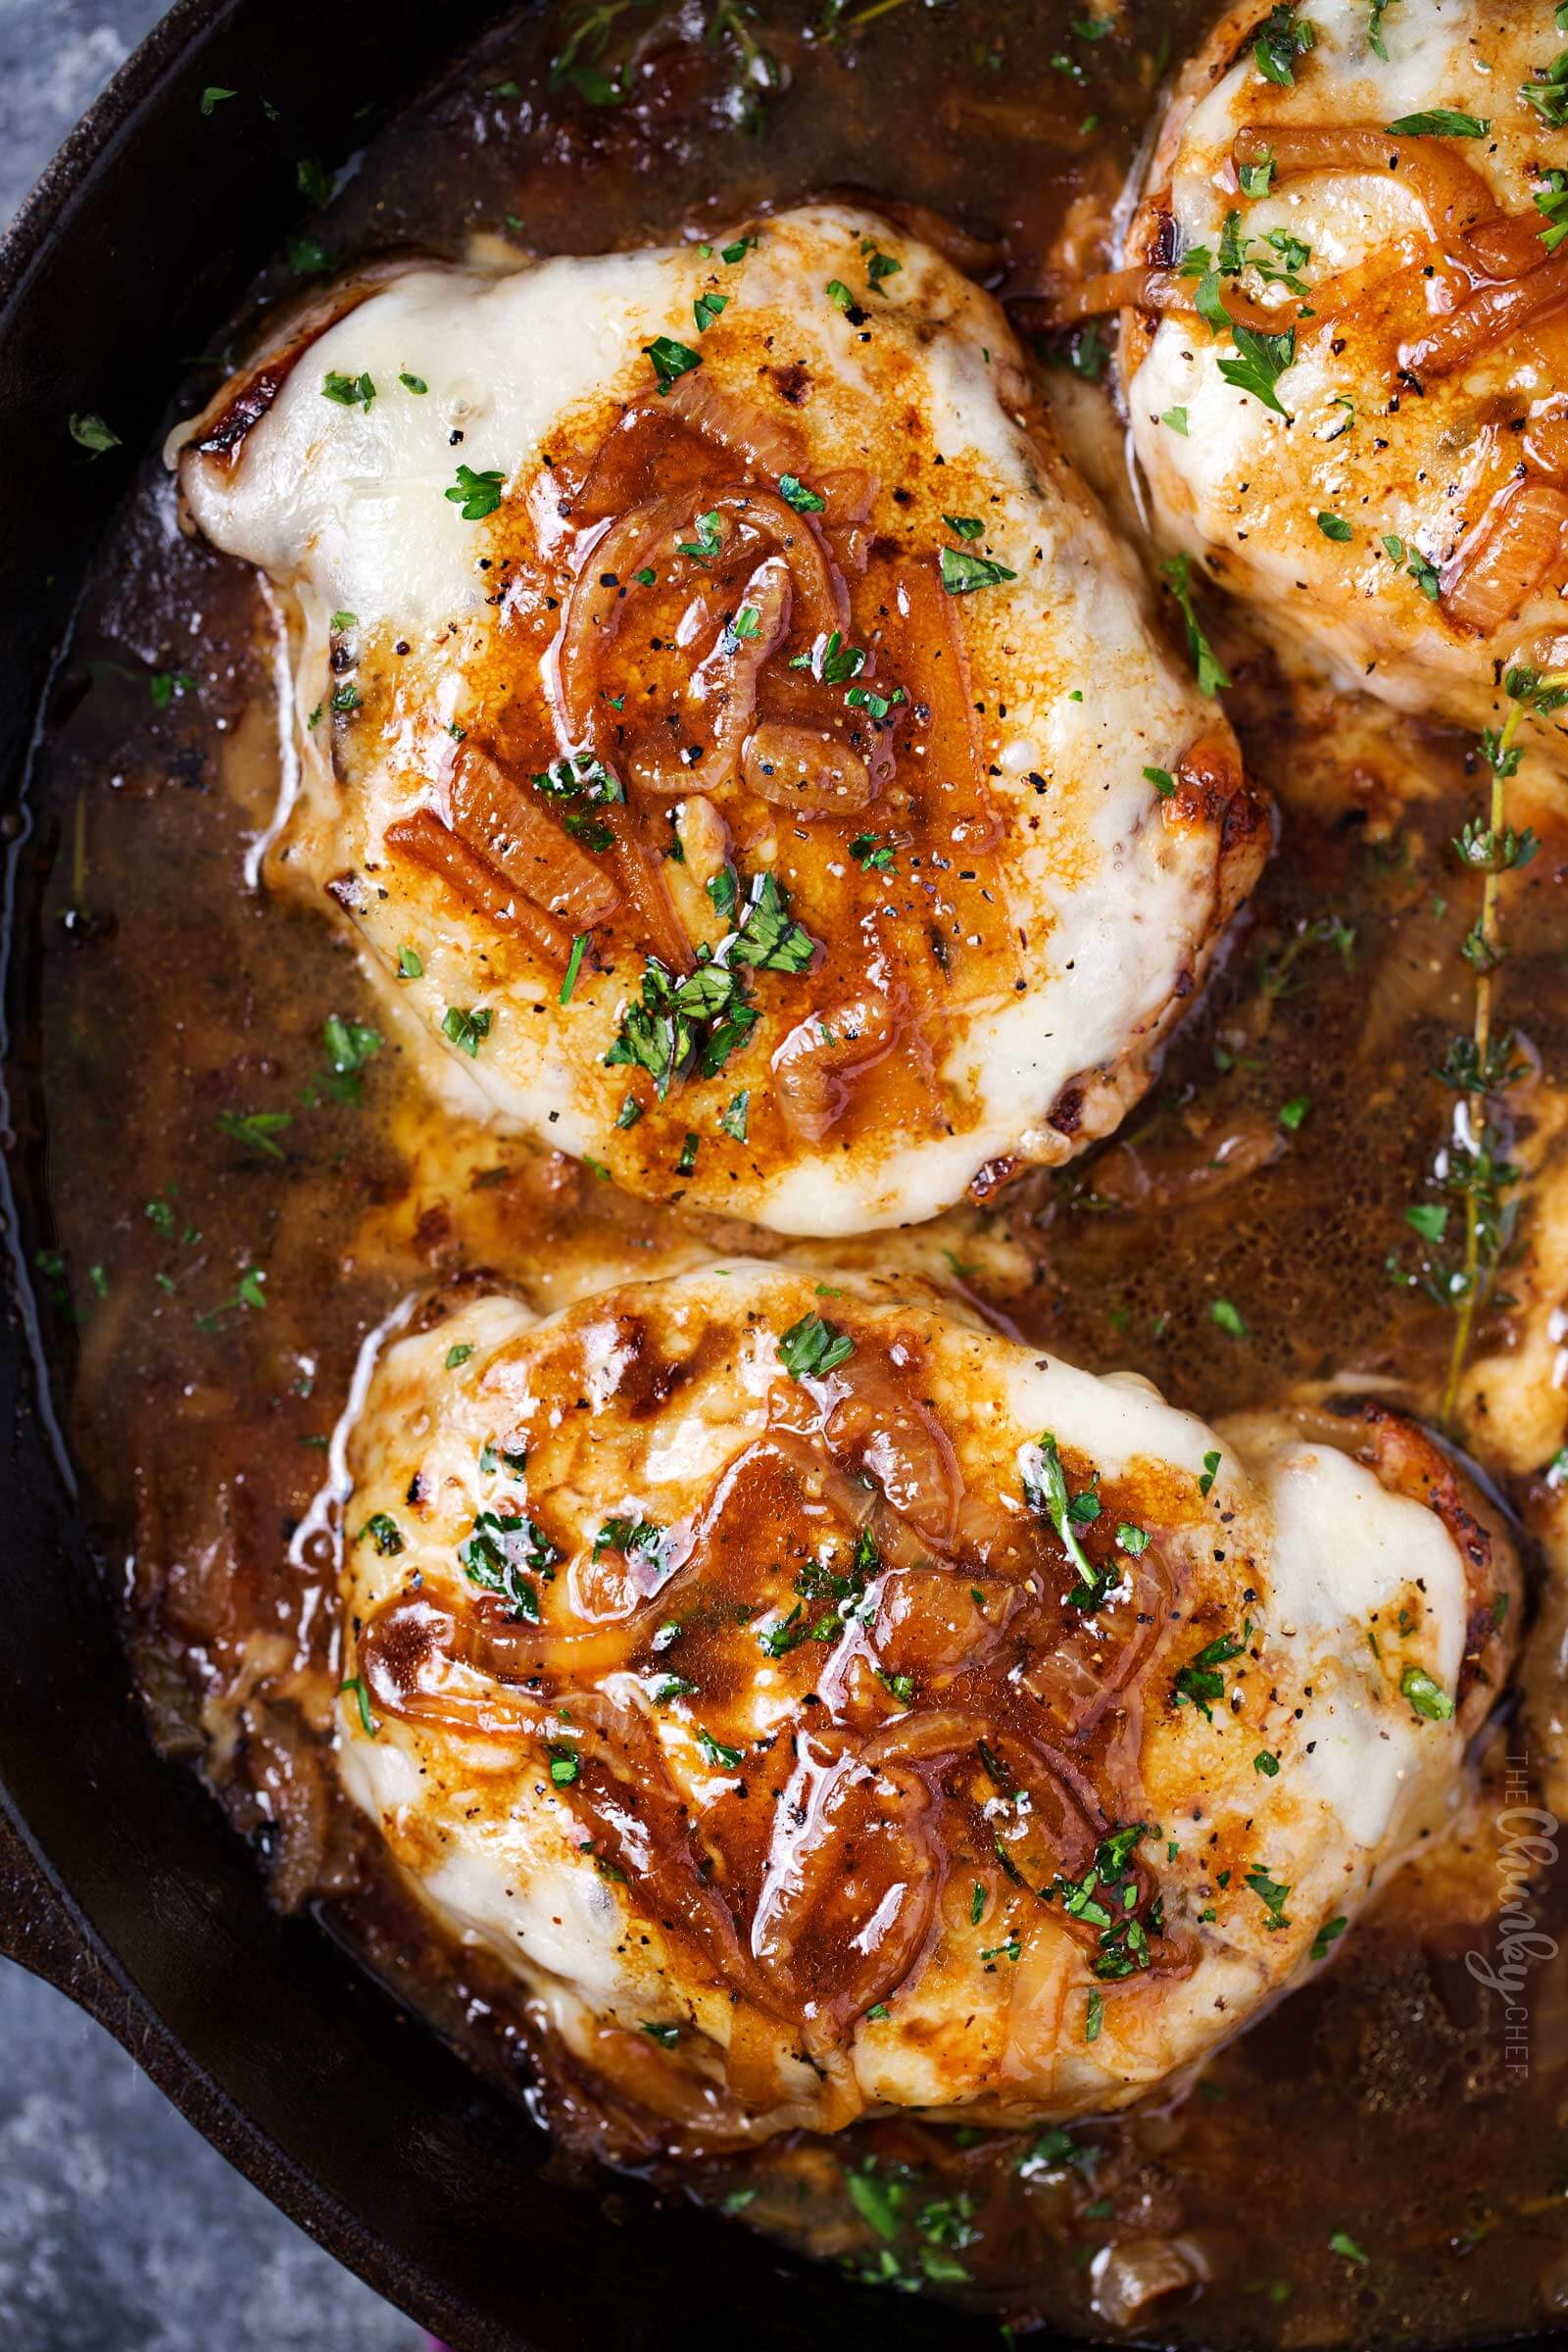 5.One Pan French Onion Smothered Pork Chops